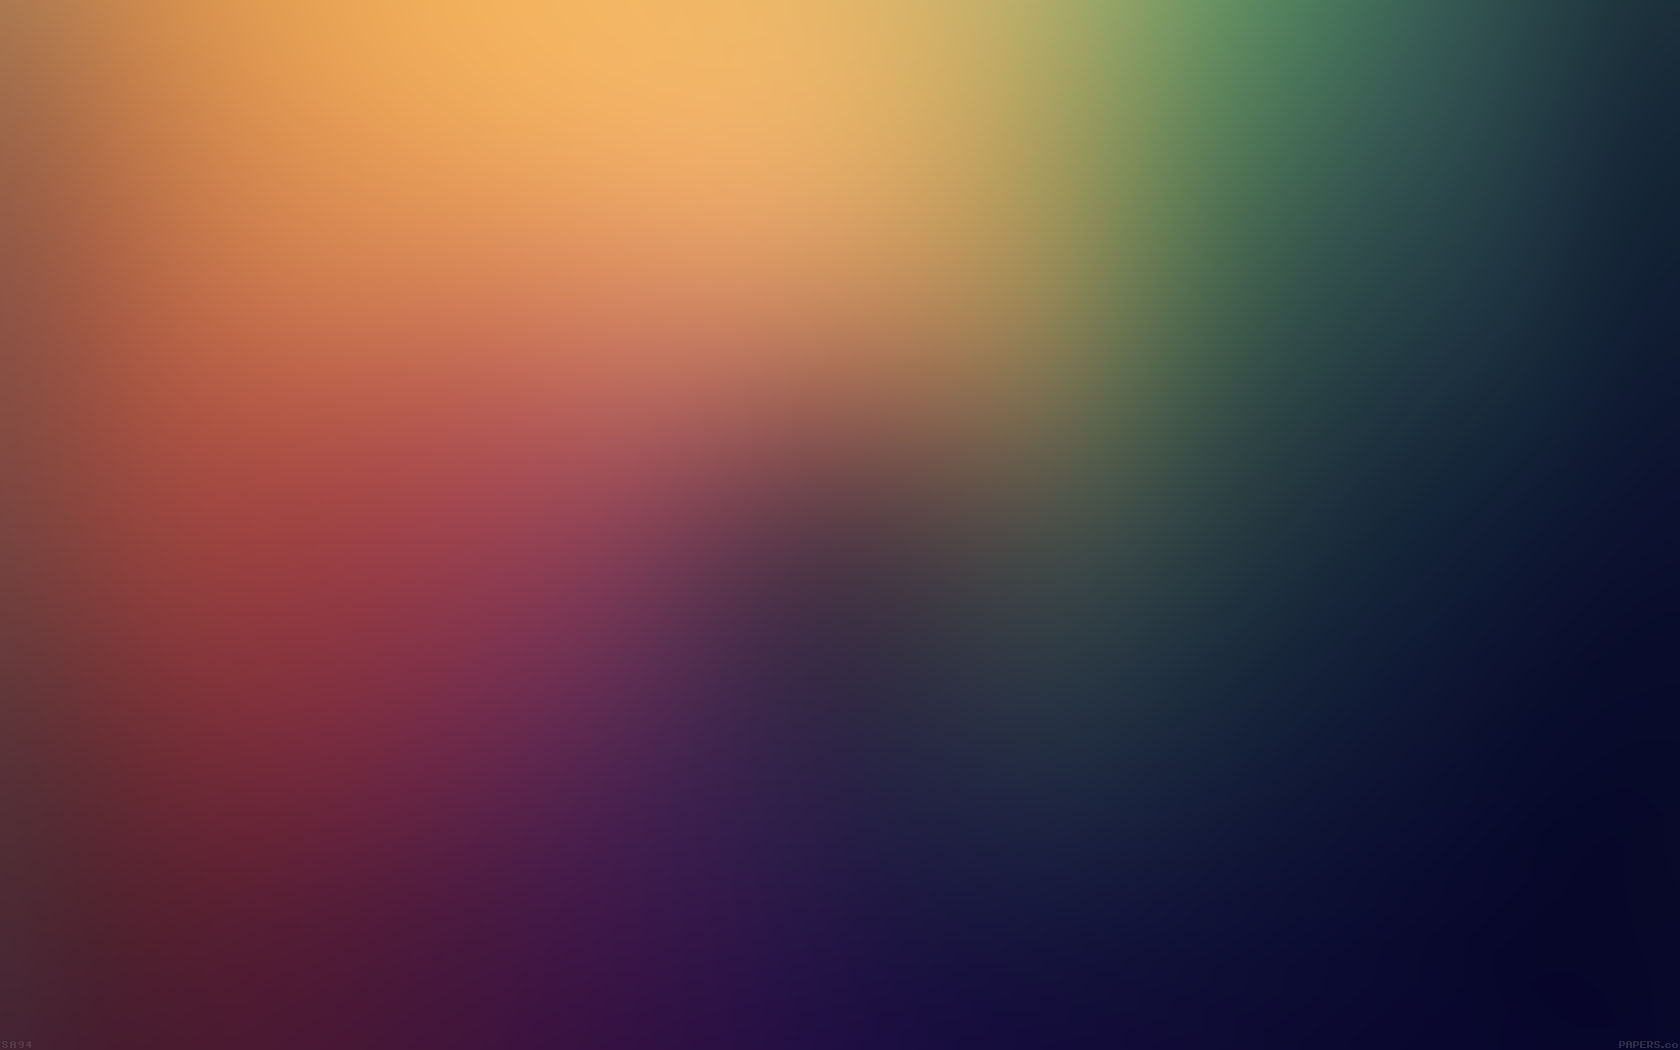 Abstract Fall Colors Wallpaper Sa94 Wallpaper All The Colors Blur Papers Co